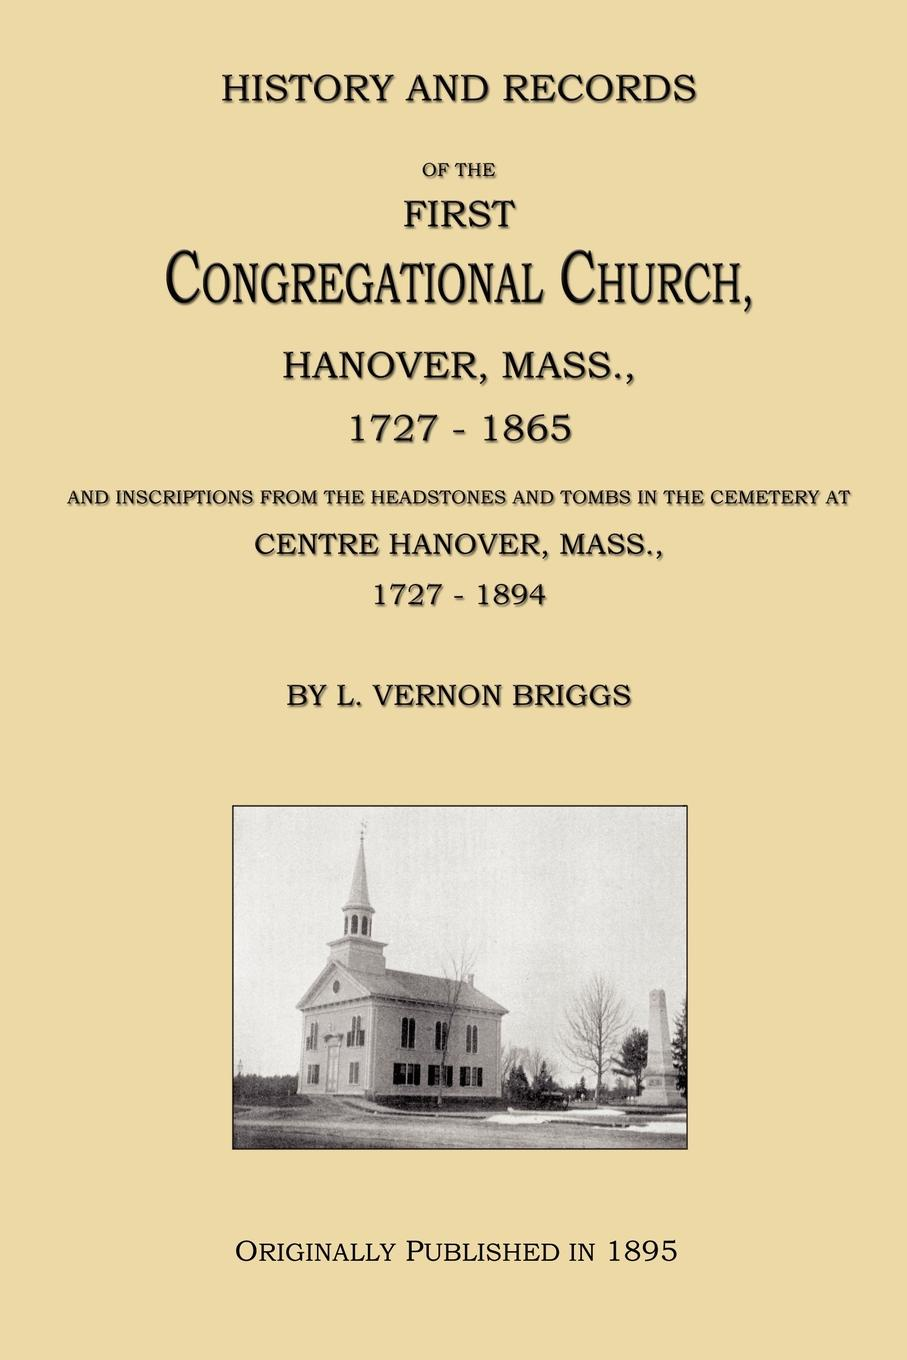 L. Vernon Briggs History and Records of the First Congregational Church, Hanover, Mass., 1727-1865 hanover hanover a copy of the records of births marriages and deaths and of intentions of marriage of the town of hanover mass 1727 1857